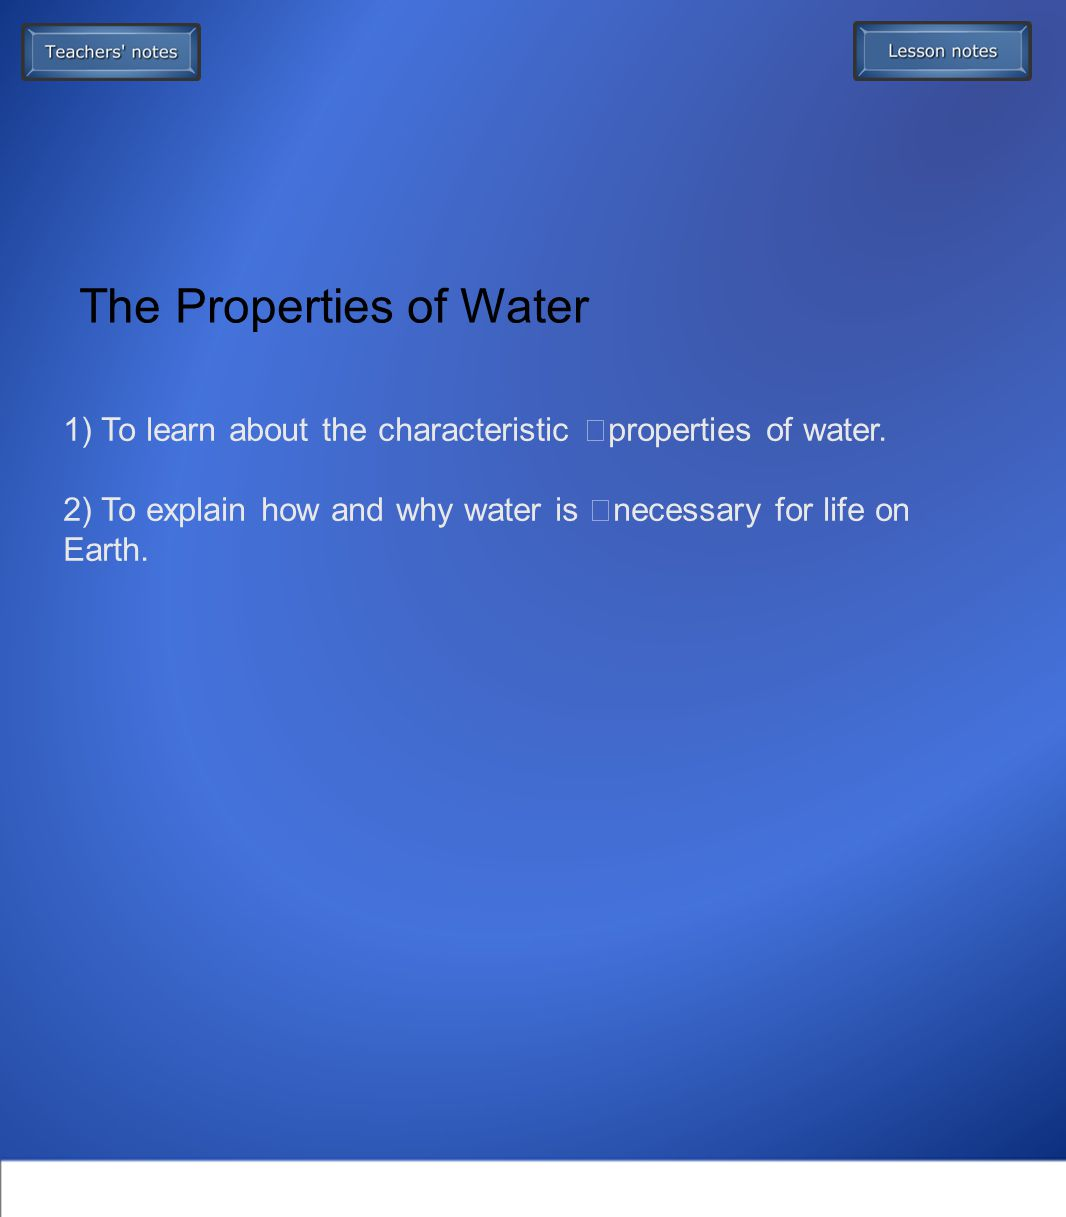 1) To learn about the characteristic properties of water.